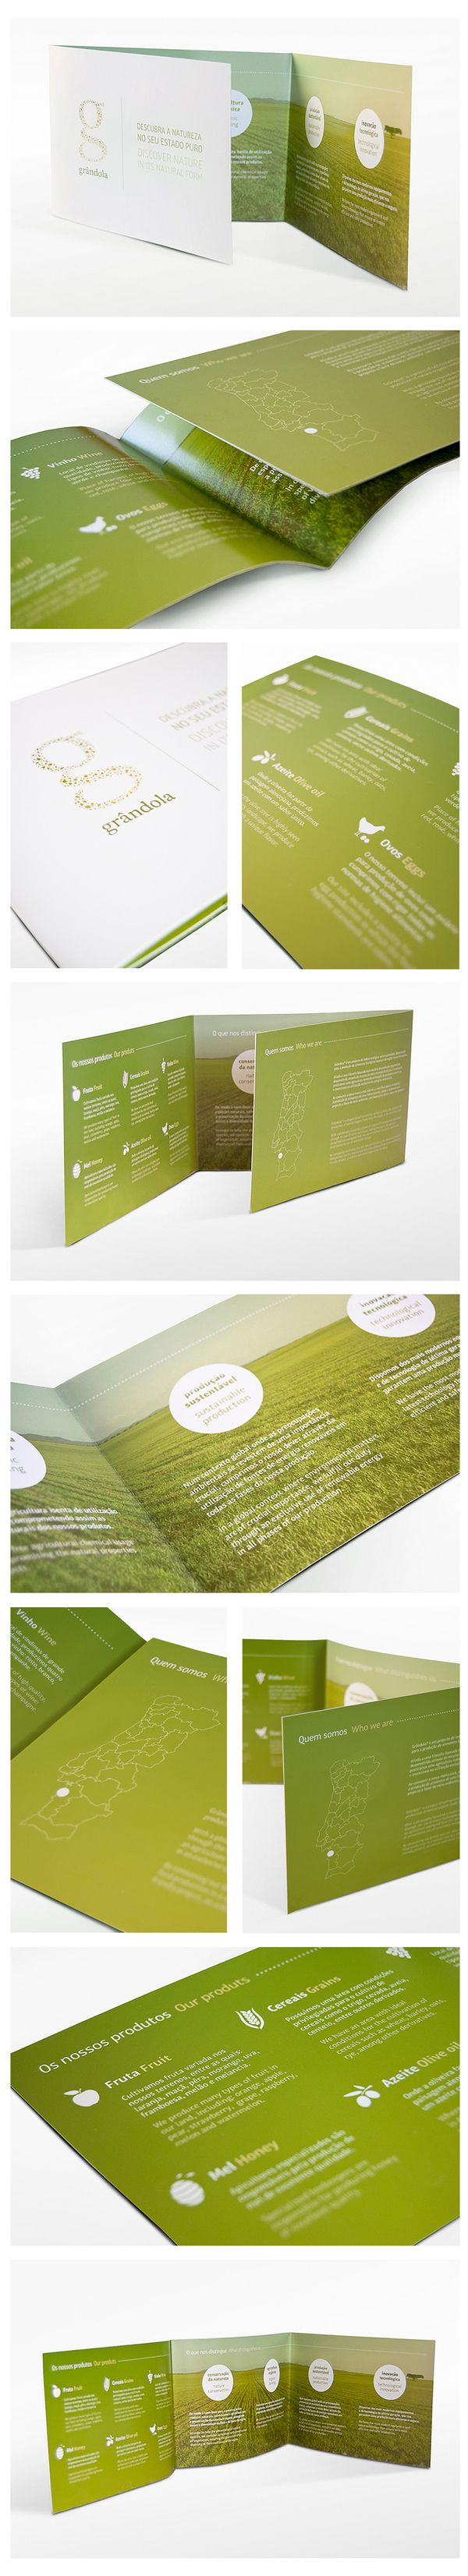 Good inspiration for a health or nutrition branding project. I love the green and organic aesthetic.